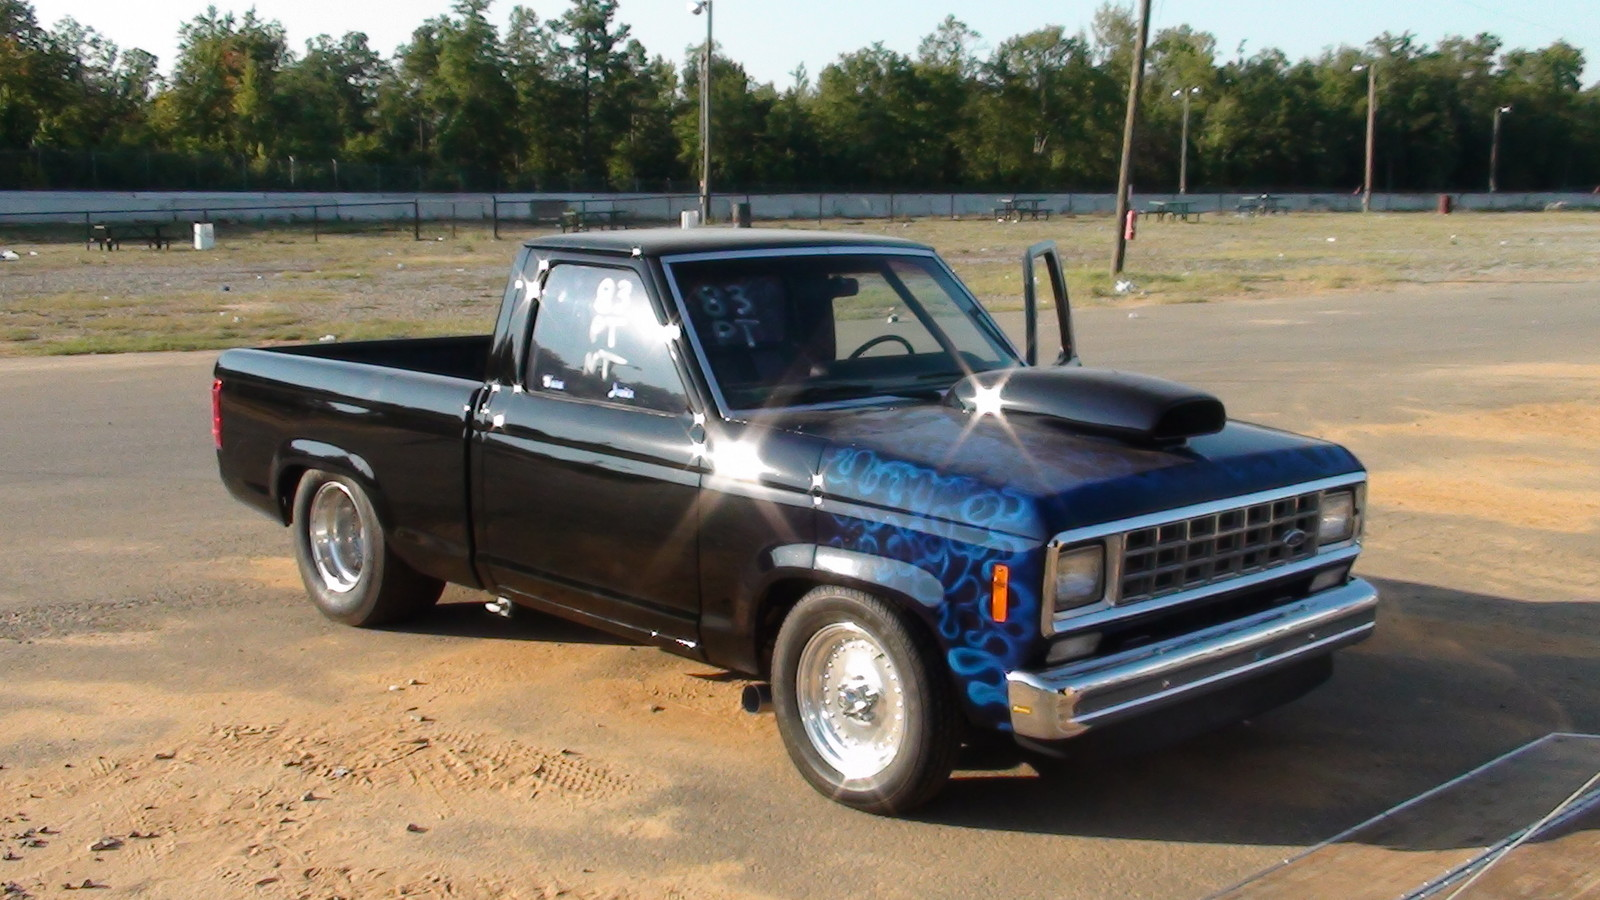 black 1983 Ford Ranger pickup licensed for highway